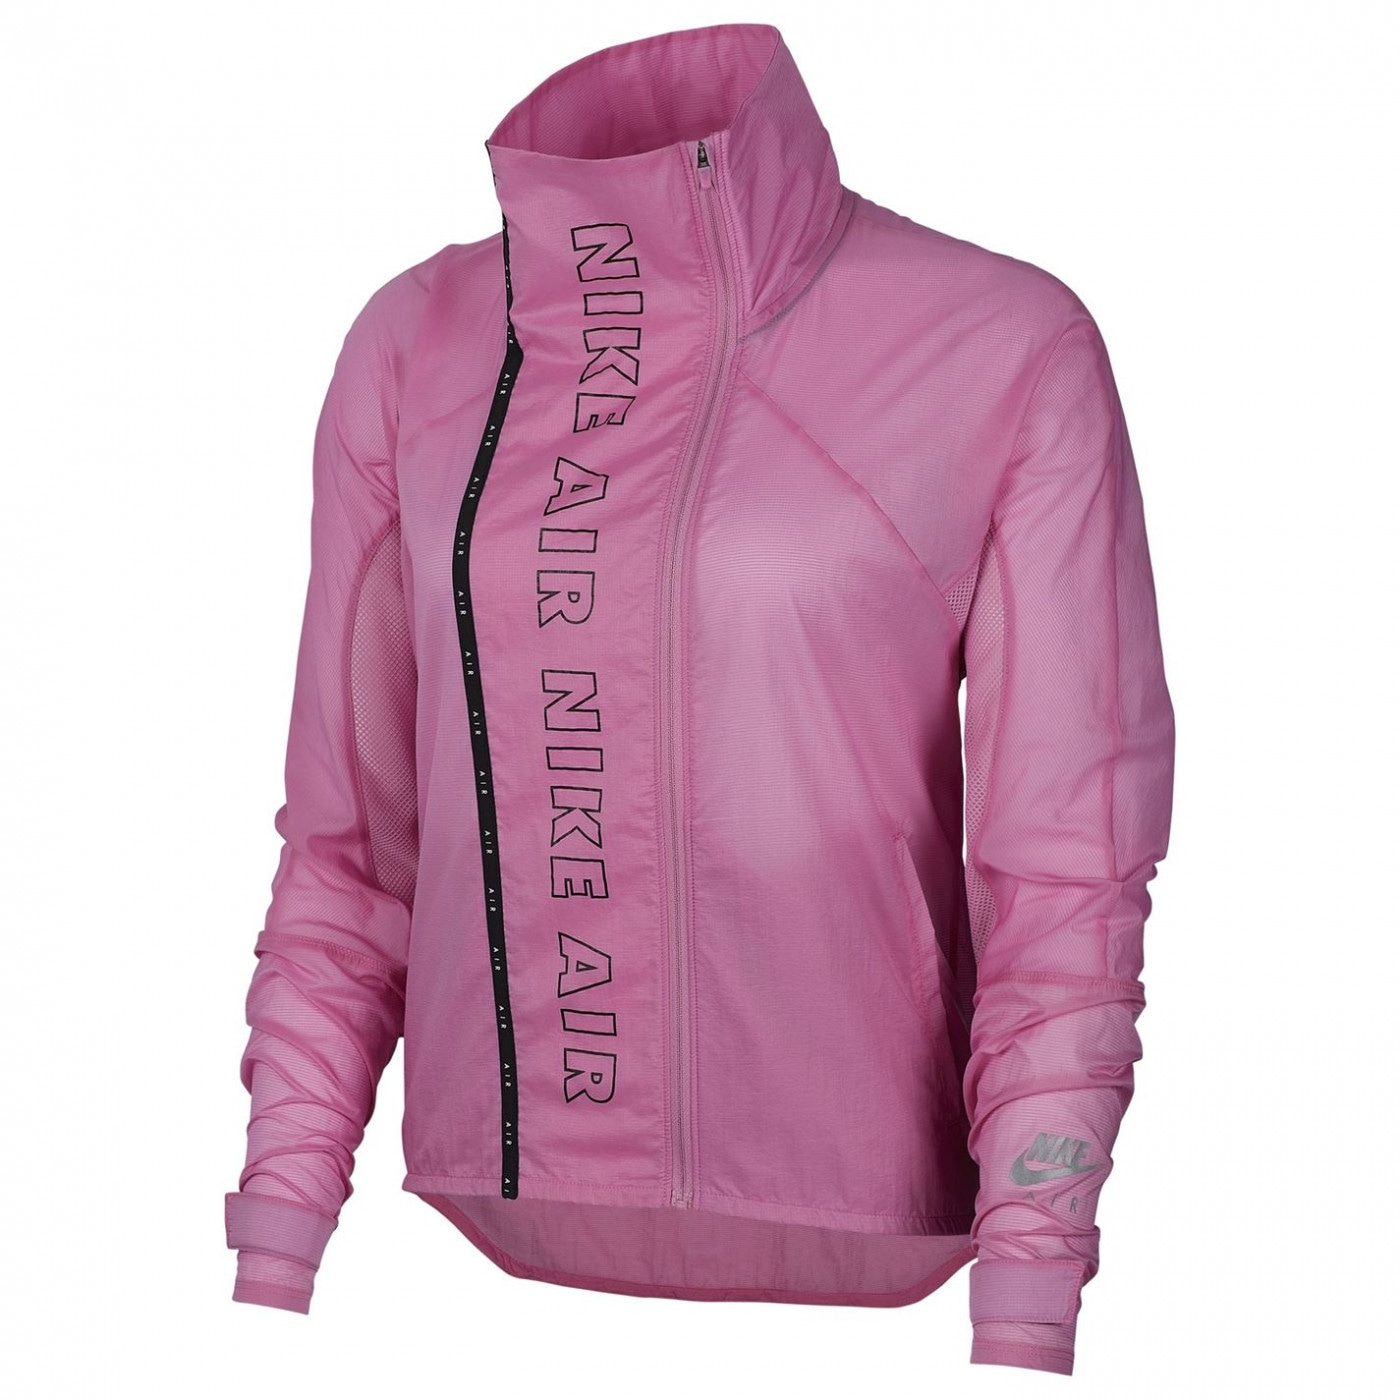 Nike Air Run Jacket Ladies